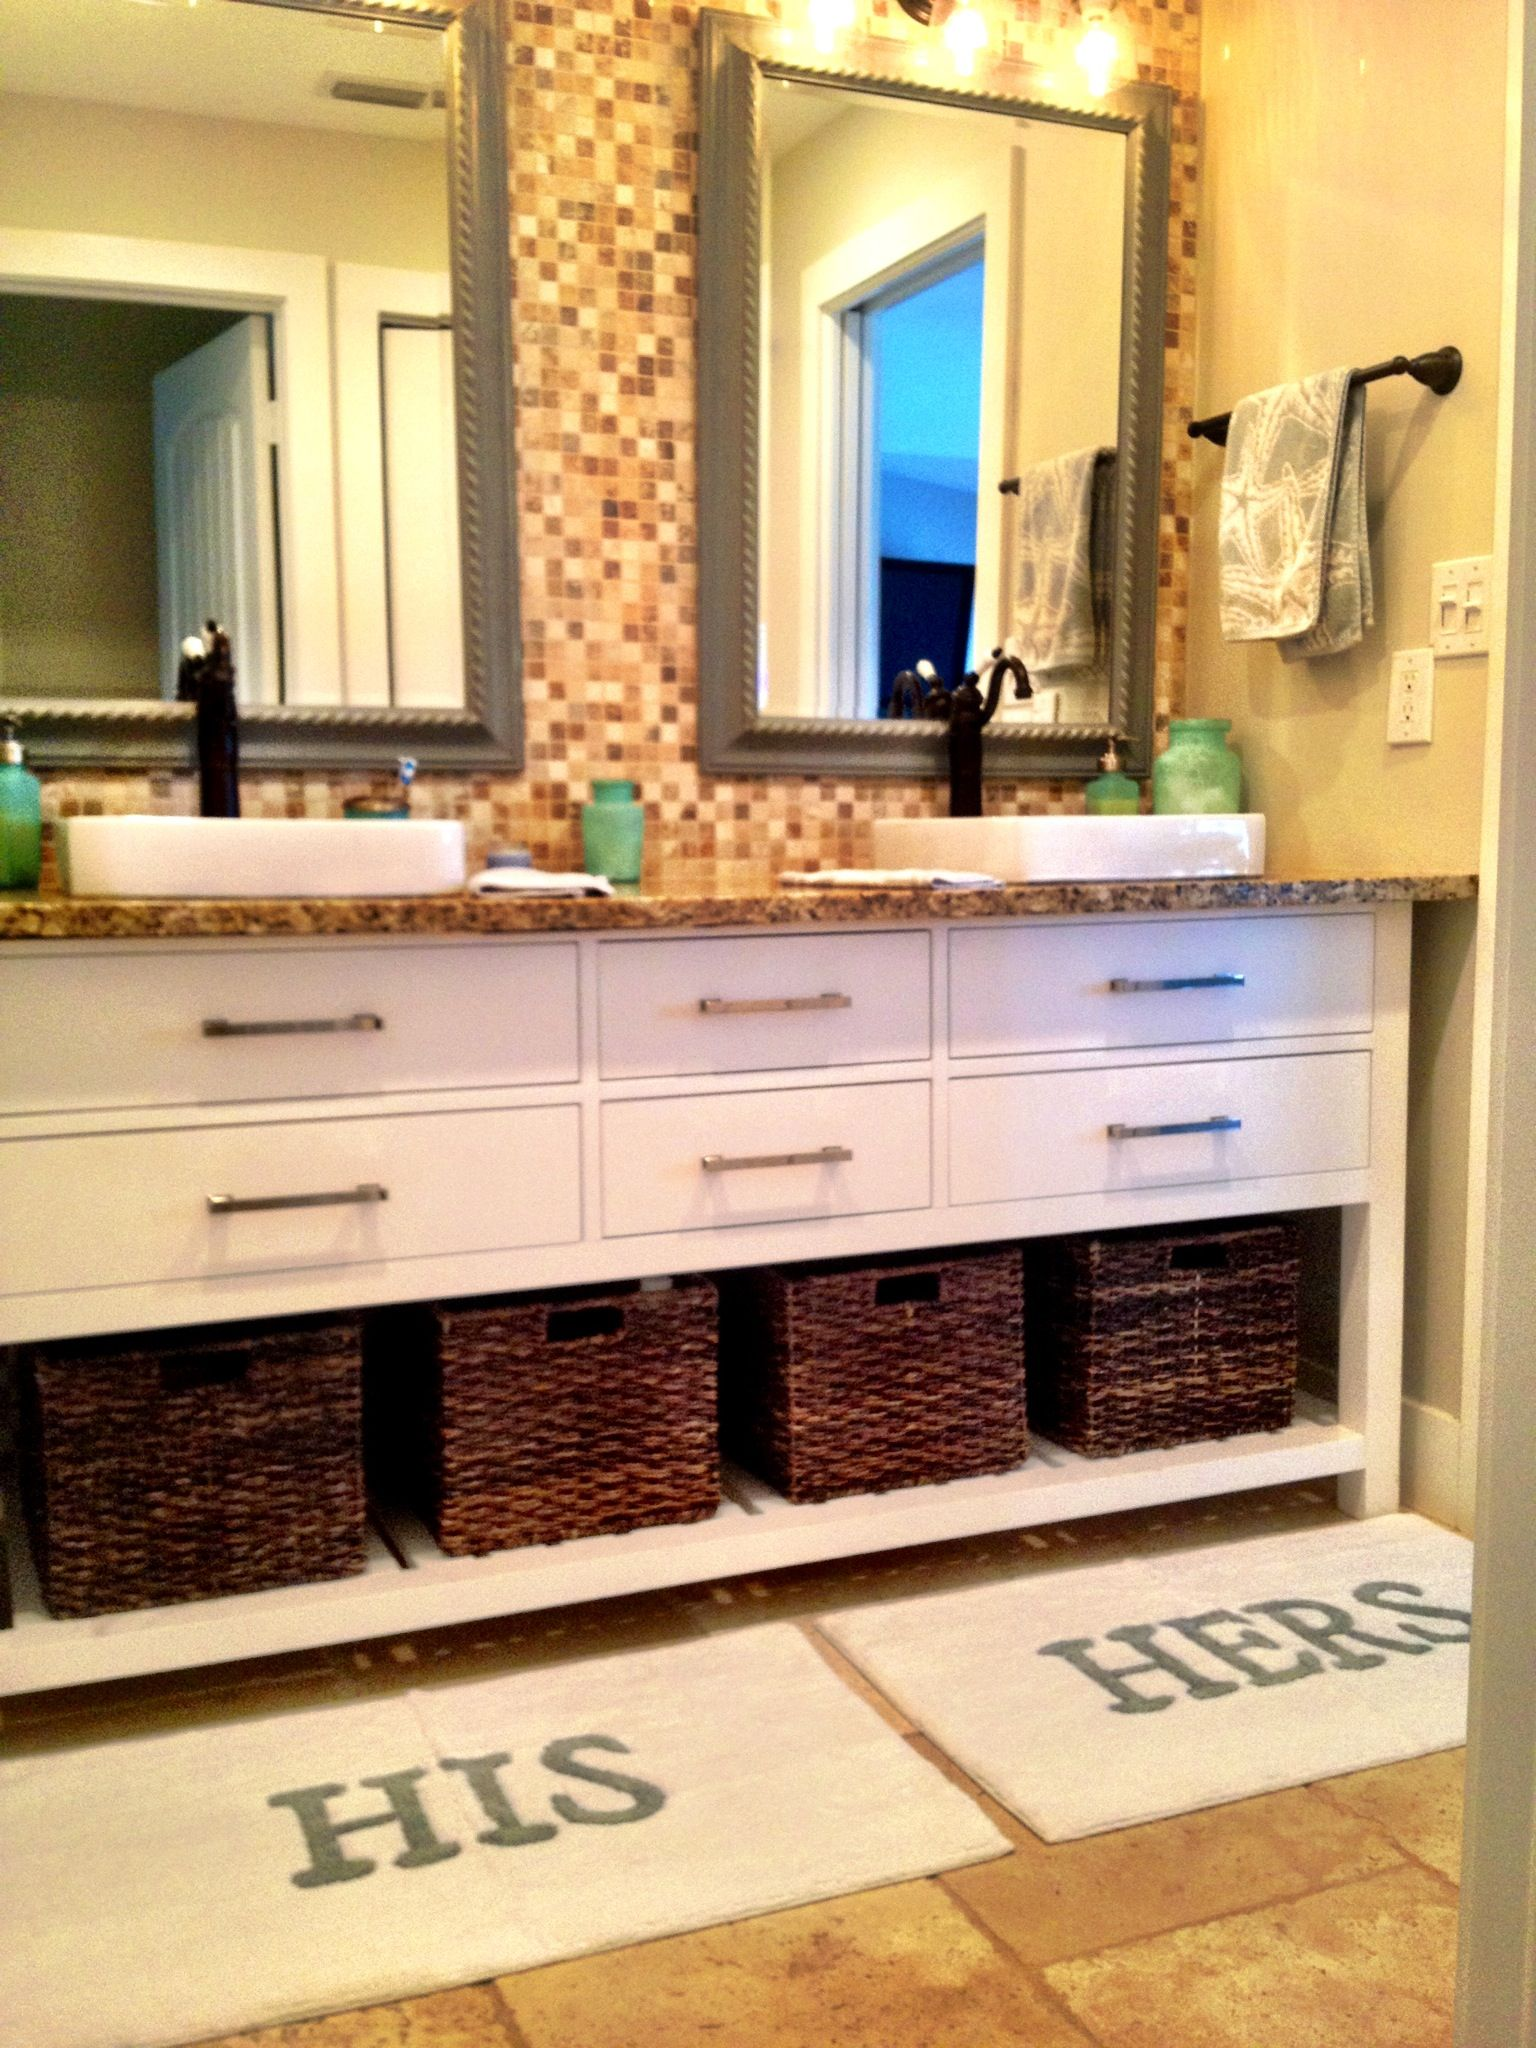 Cute His And Her Bathroom Love The Rugs And Basket Idea